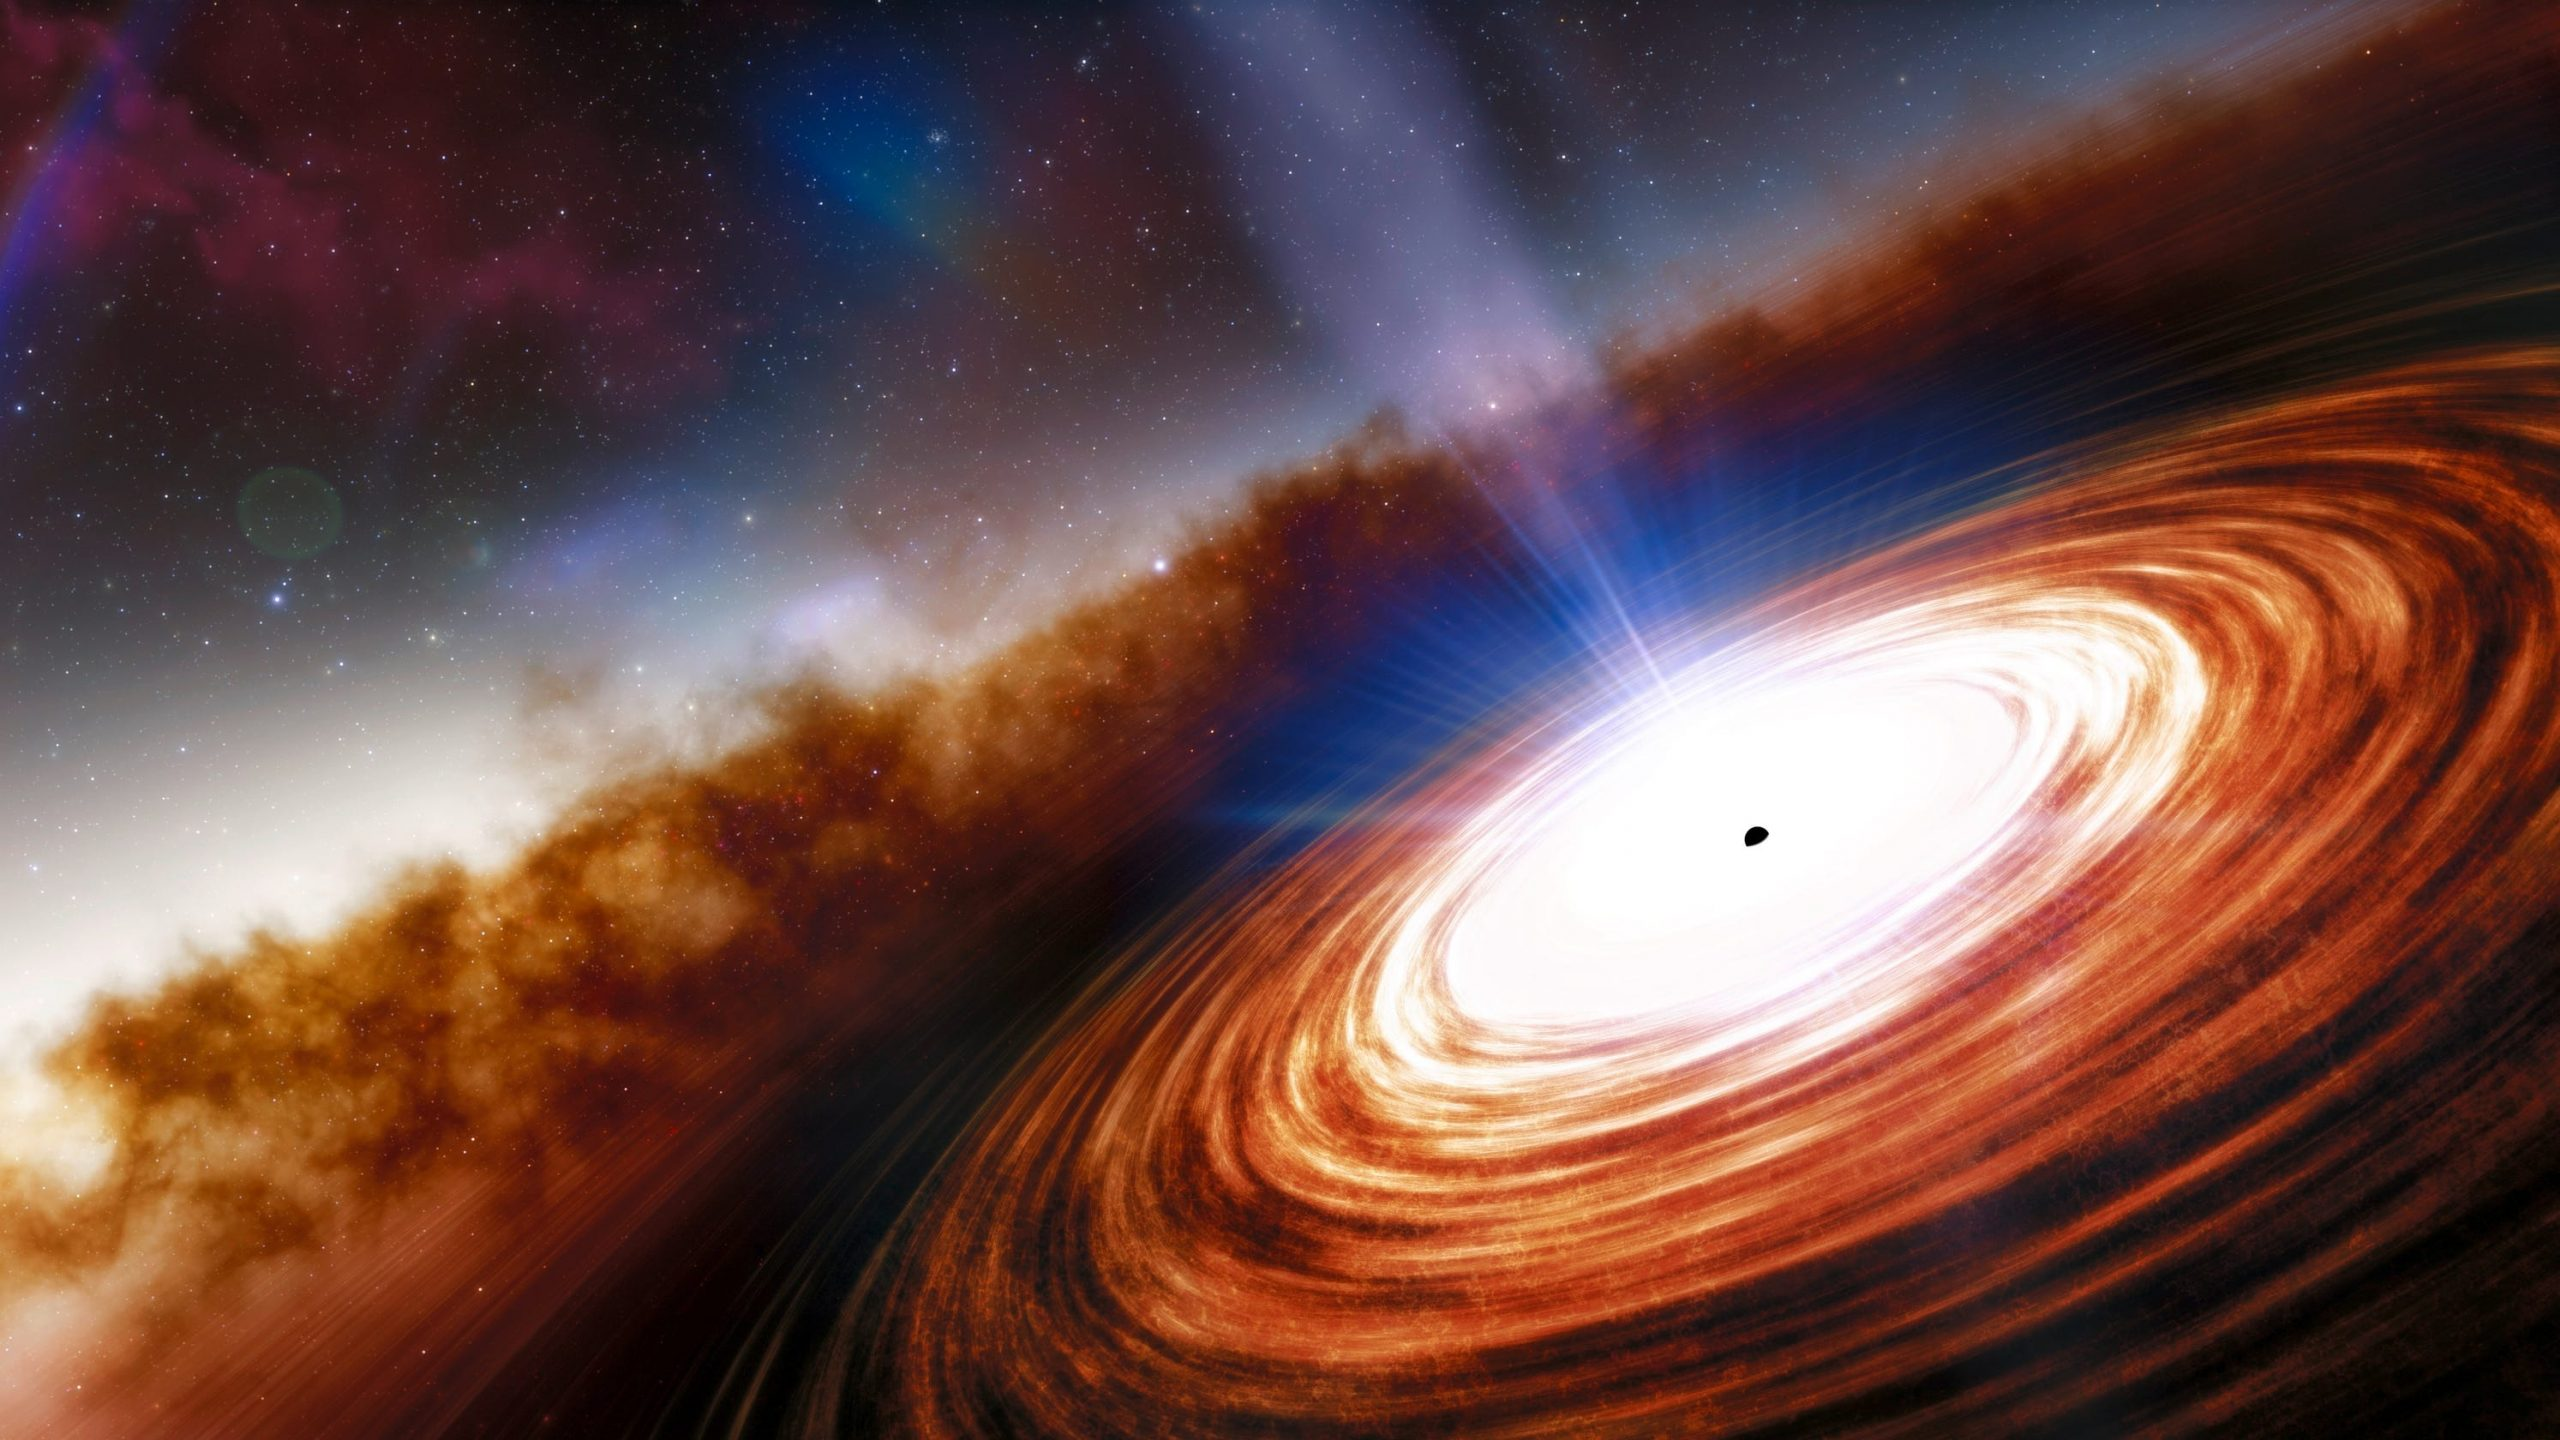 Discover the oldest and most distant quasar and a supermassive black hole